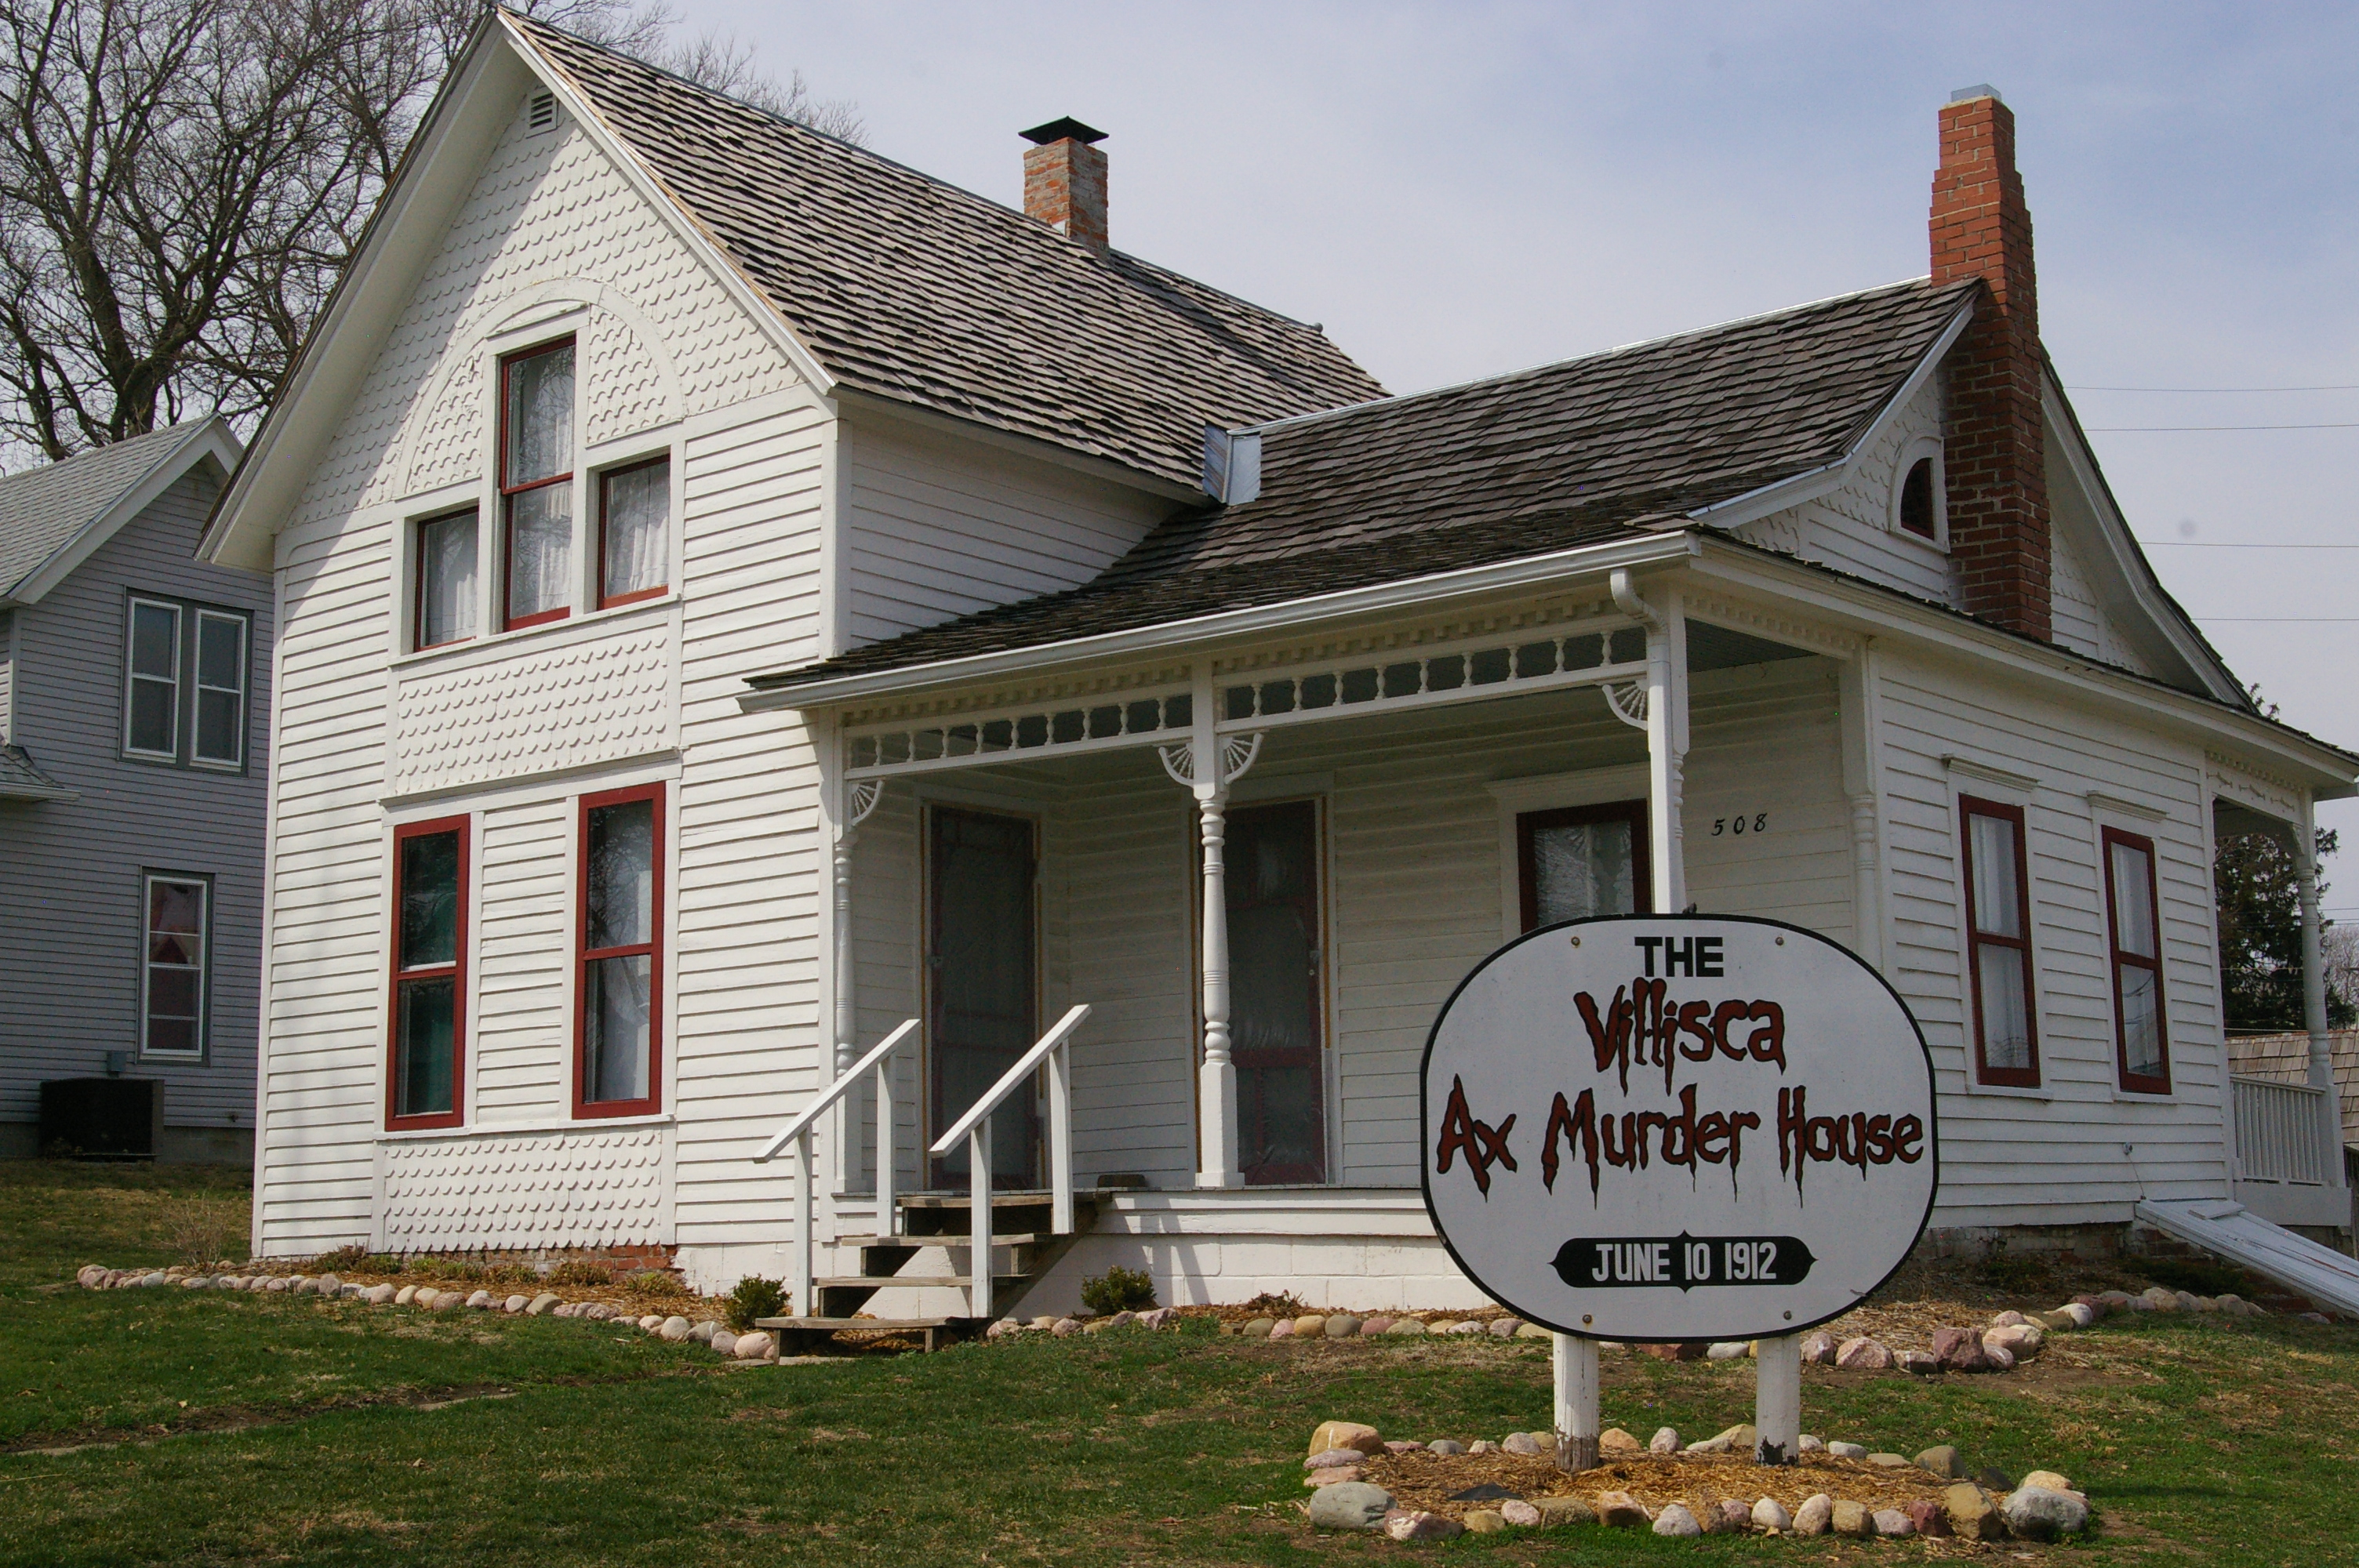 the villisca axe murder house Villisca ax murder house: address, phone number,  the moore house in villisca was the site of eight axe murders in 1912 about villisca ax murder house.